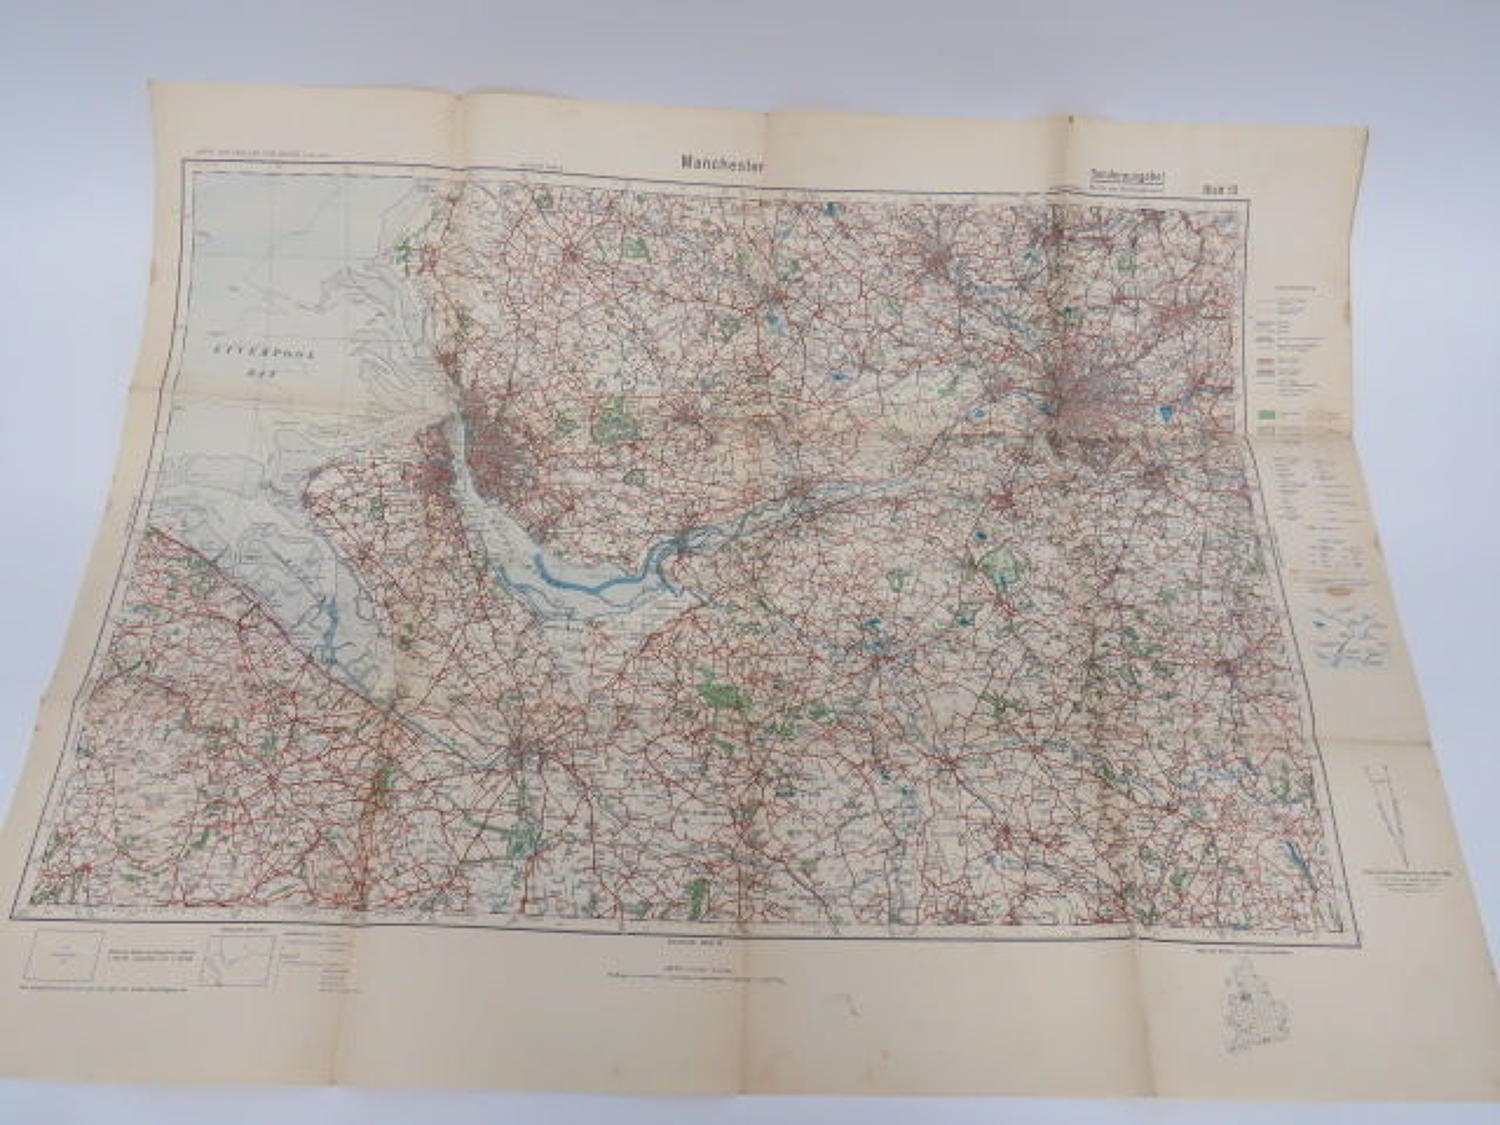 WW 2 German Invasion Map of Manchester/Liverpool